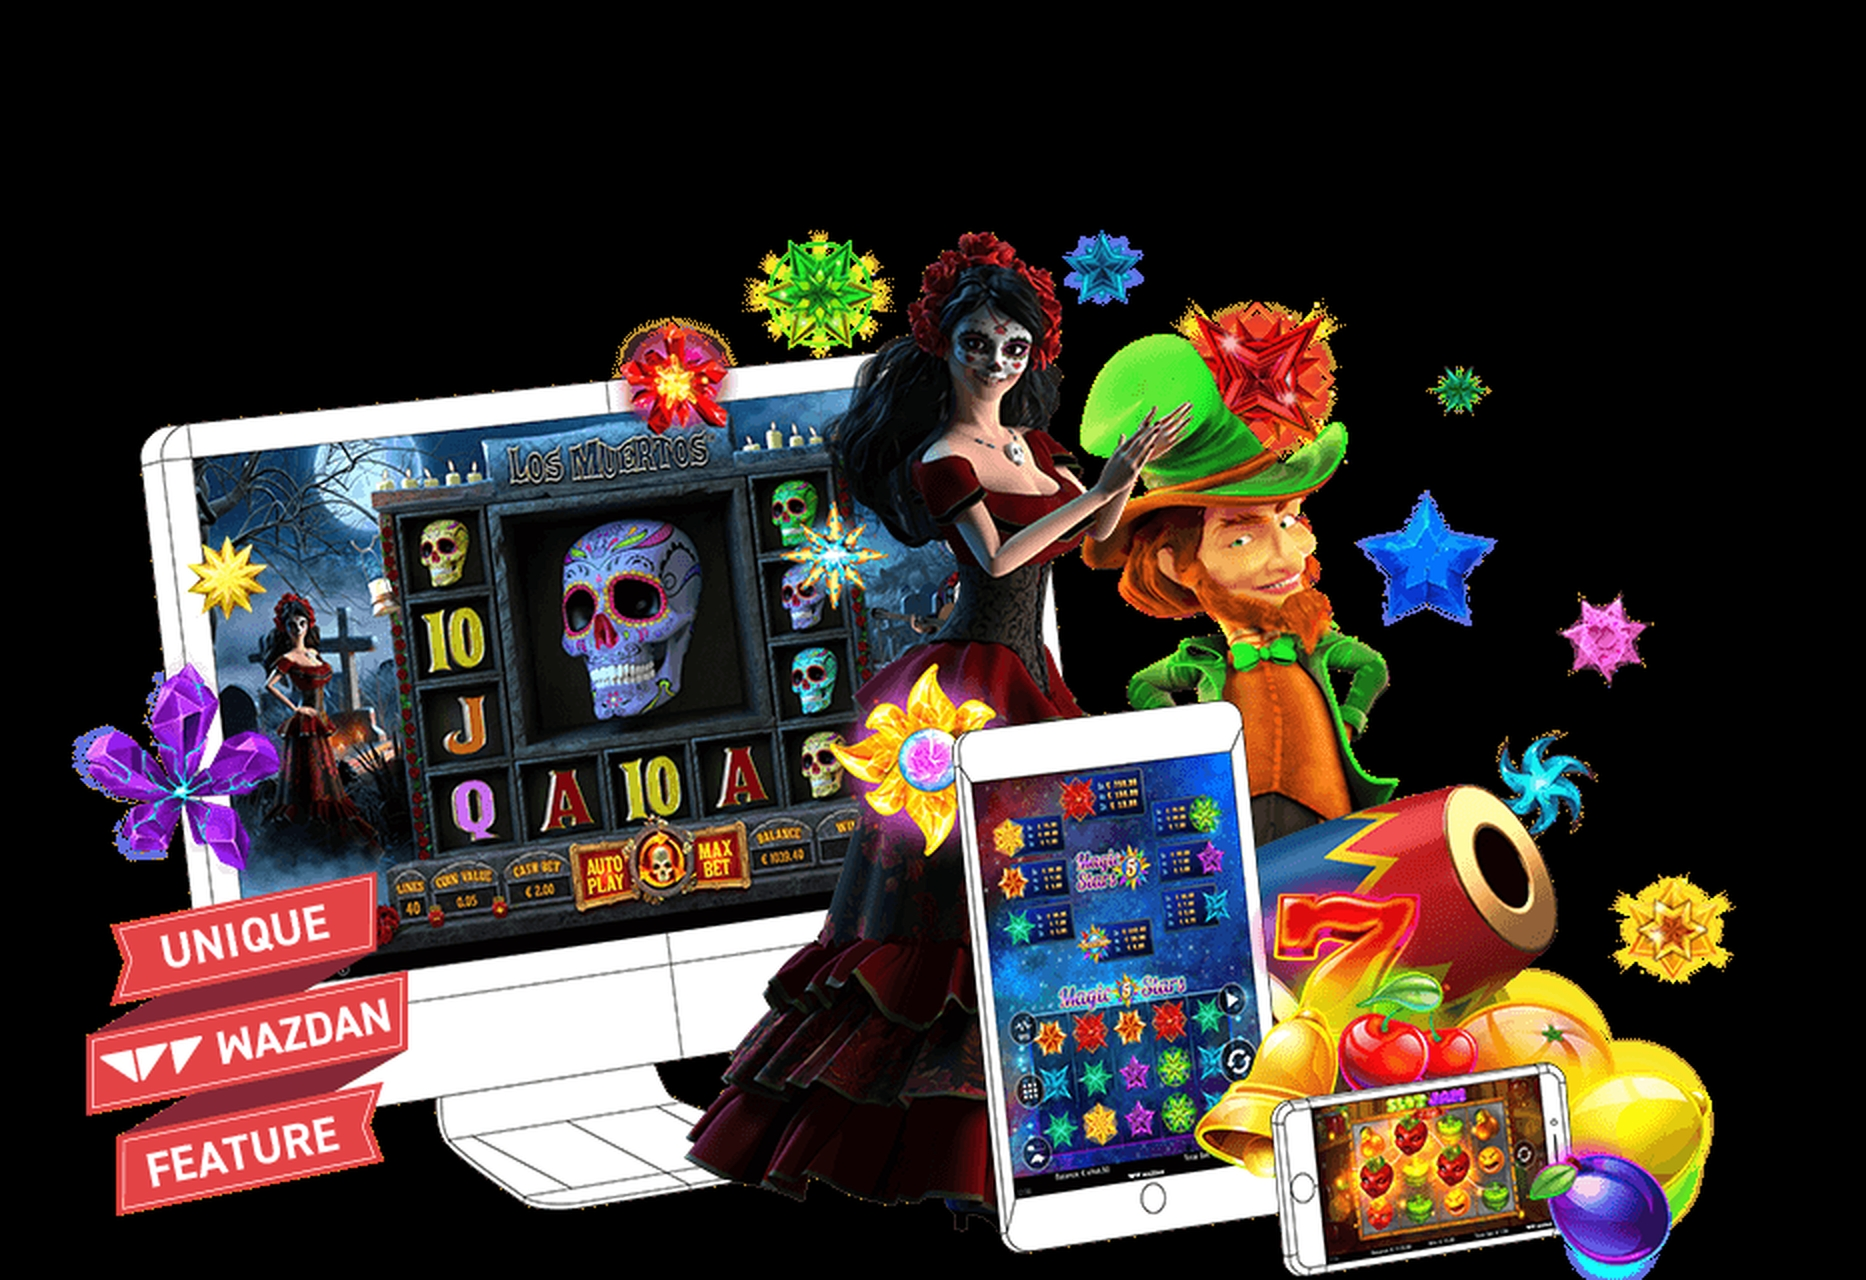 The Arcade Online Slot Demo Game by Wazdan